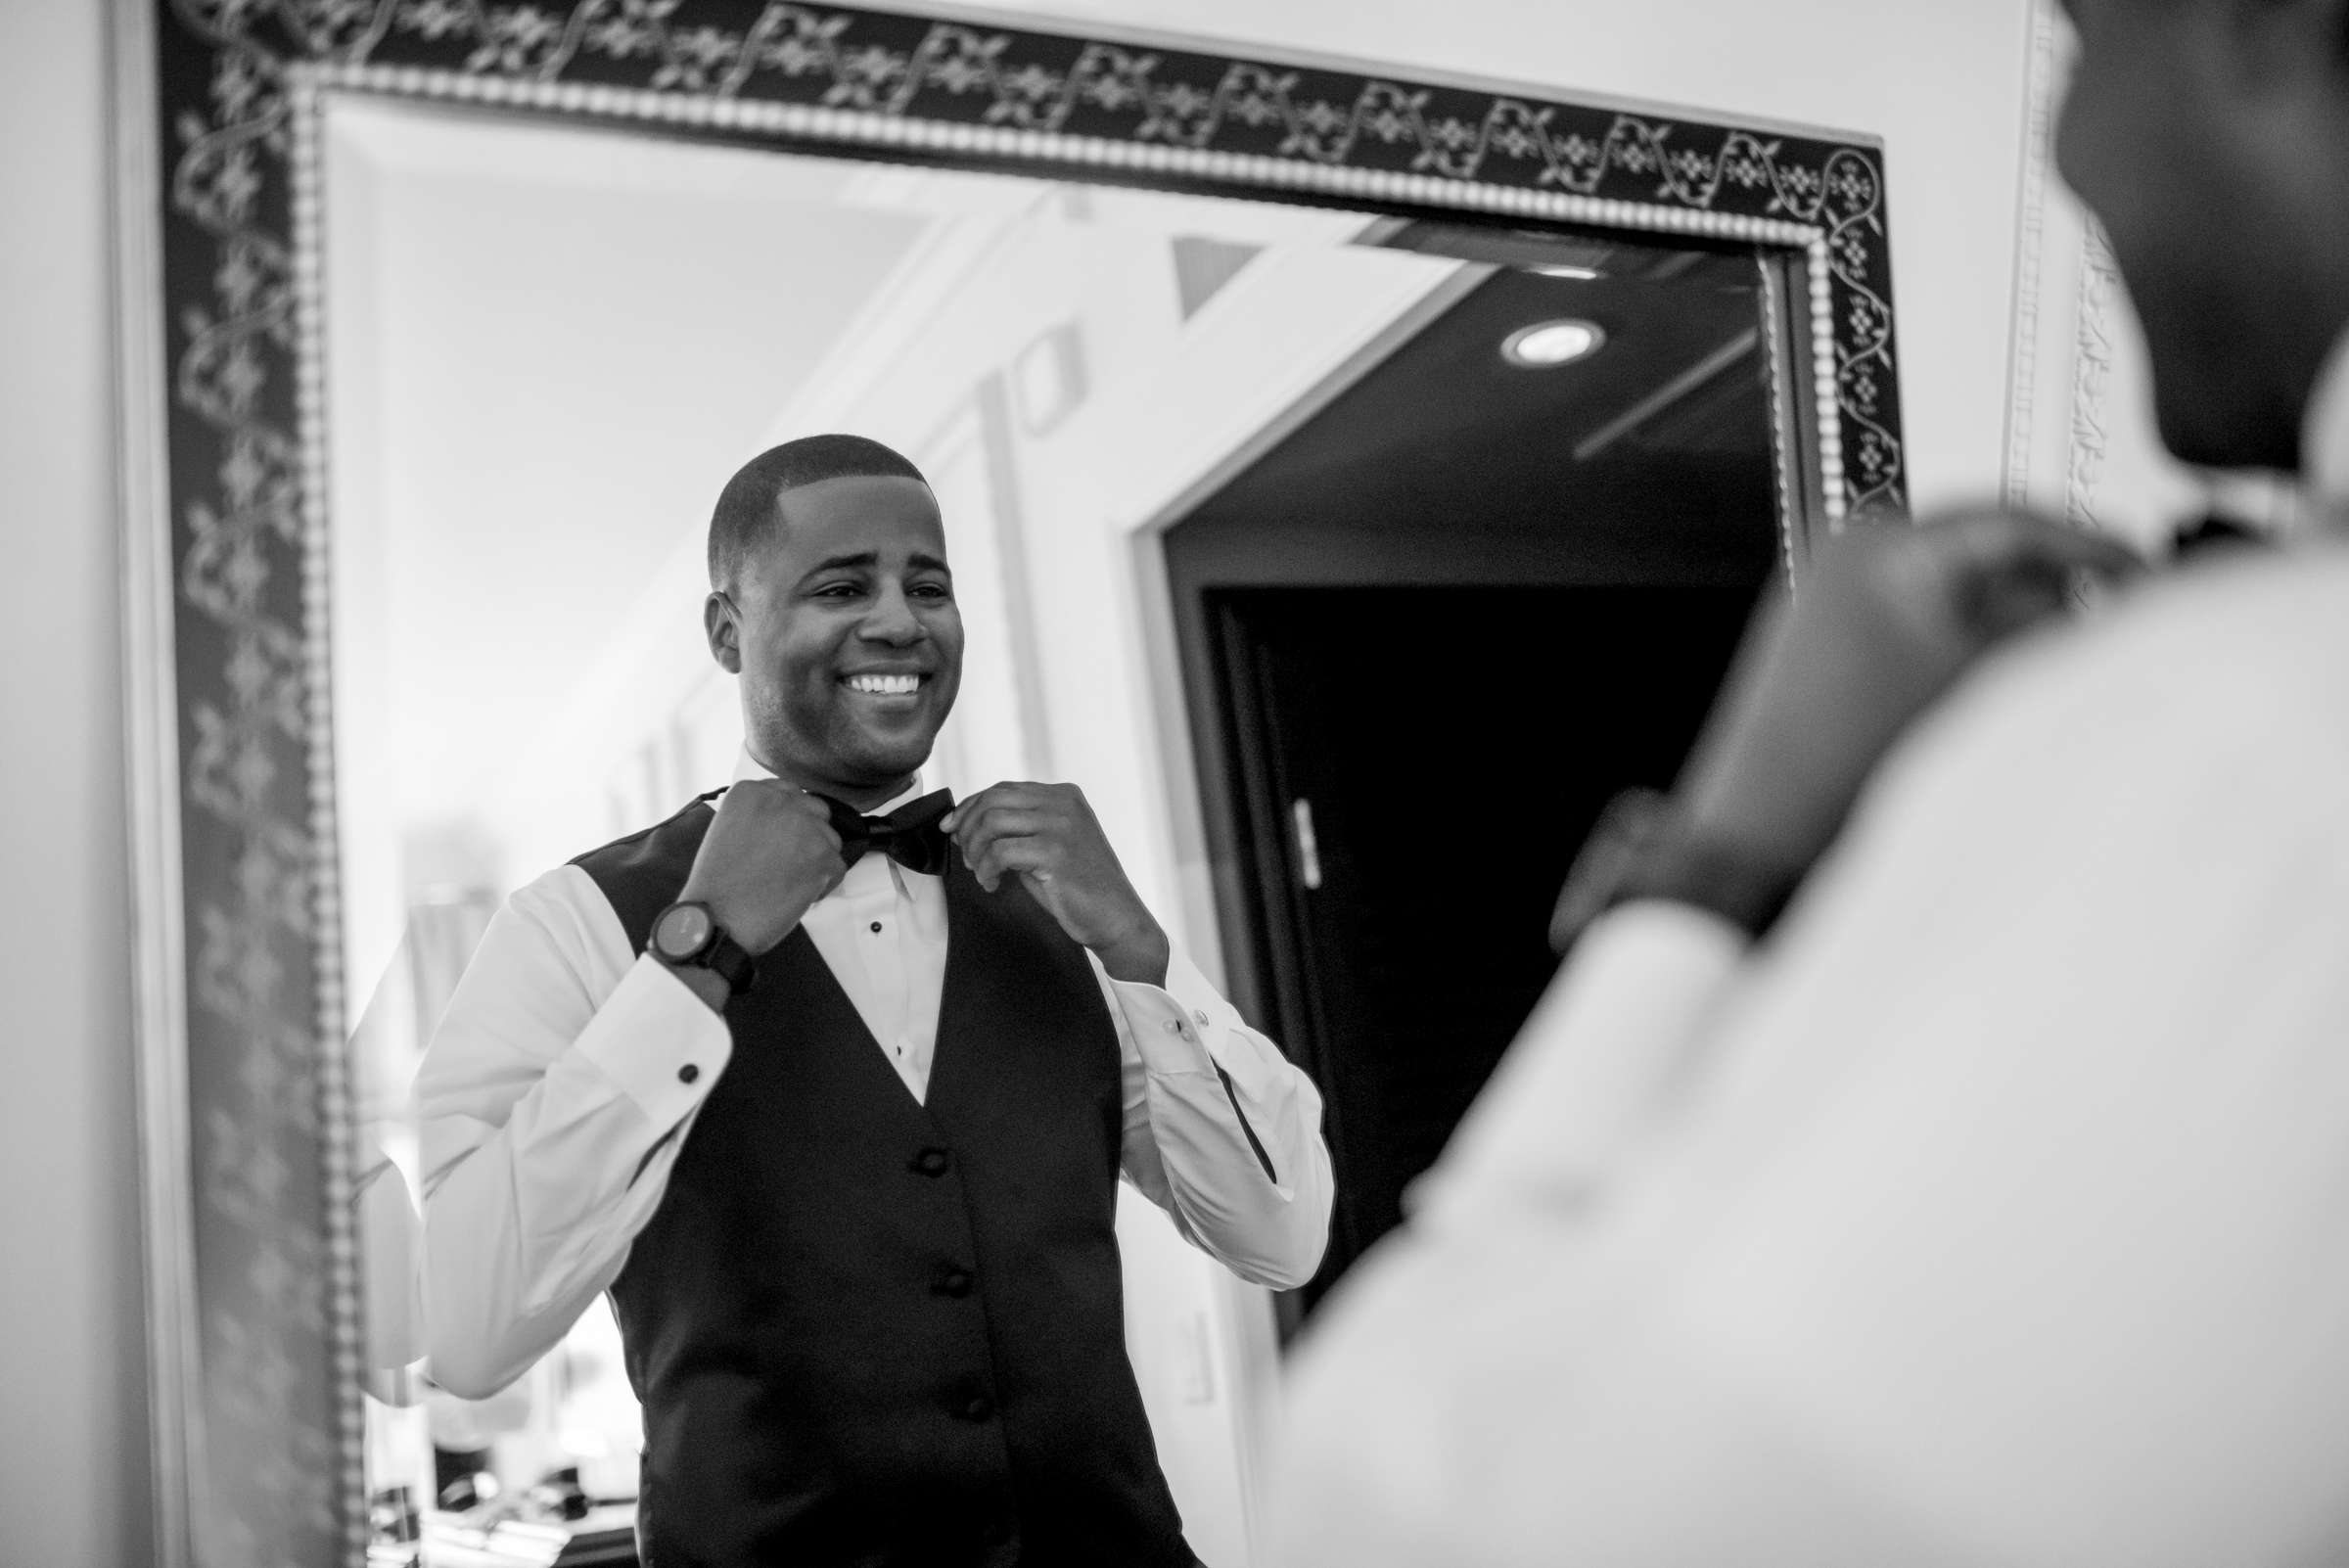 Coronado Community Center Wedding coordinated by First Comes Love Weddings & Events, Nikia and Charles Wedding Photo #11 by True Photography